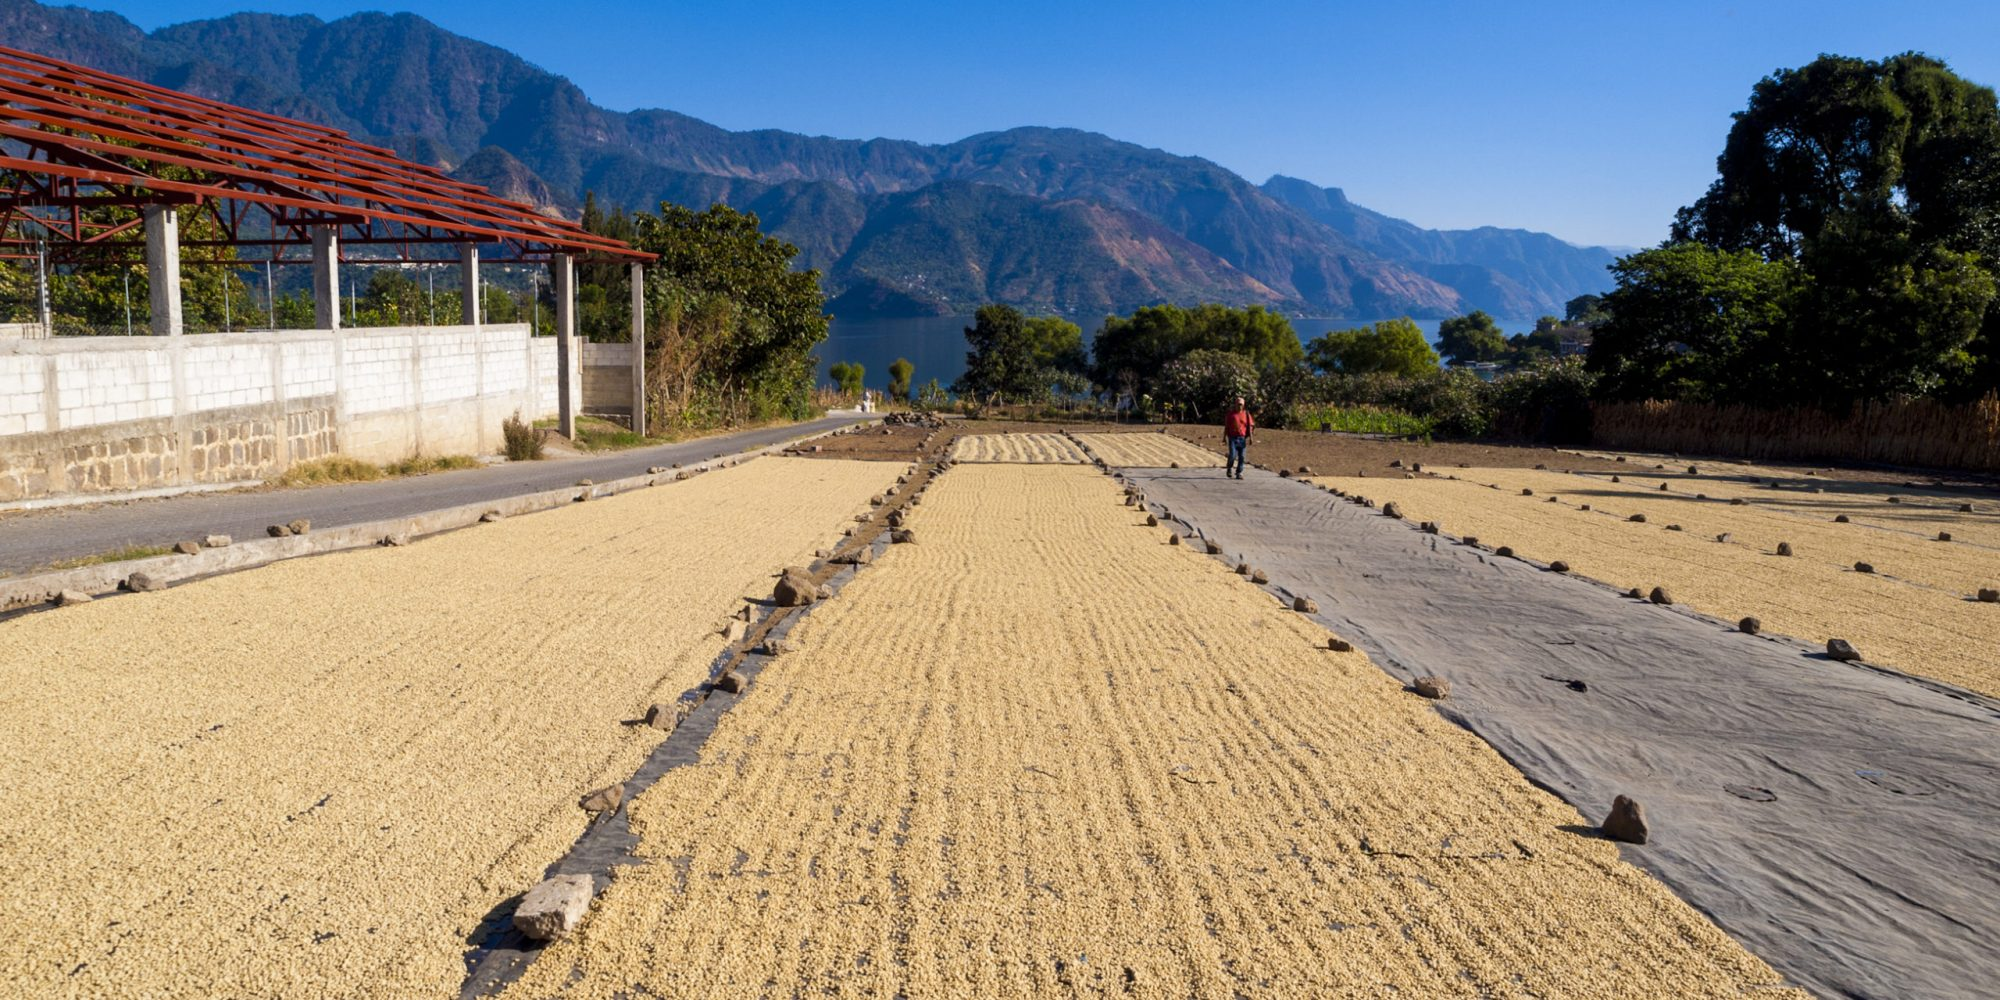 San Pedro de Lago, Guatemala - January 2, 2009: Coffee beans are laid out to dry in the sun in rows by lake Atitlan. A man can be seen in the distance.